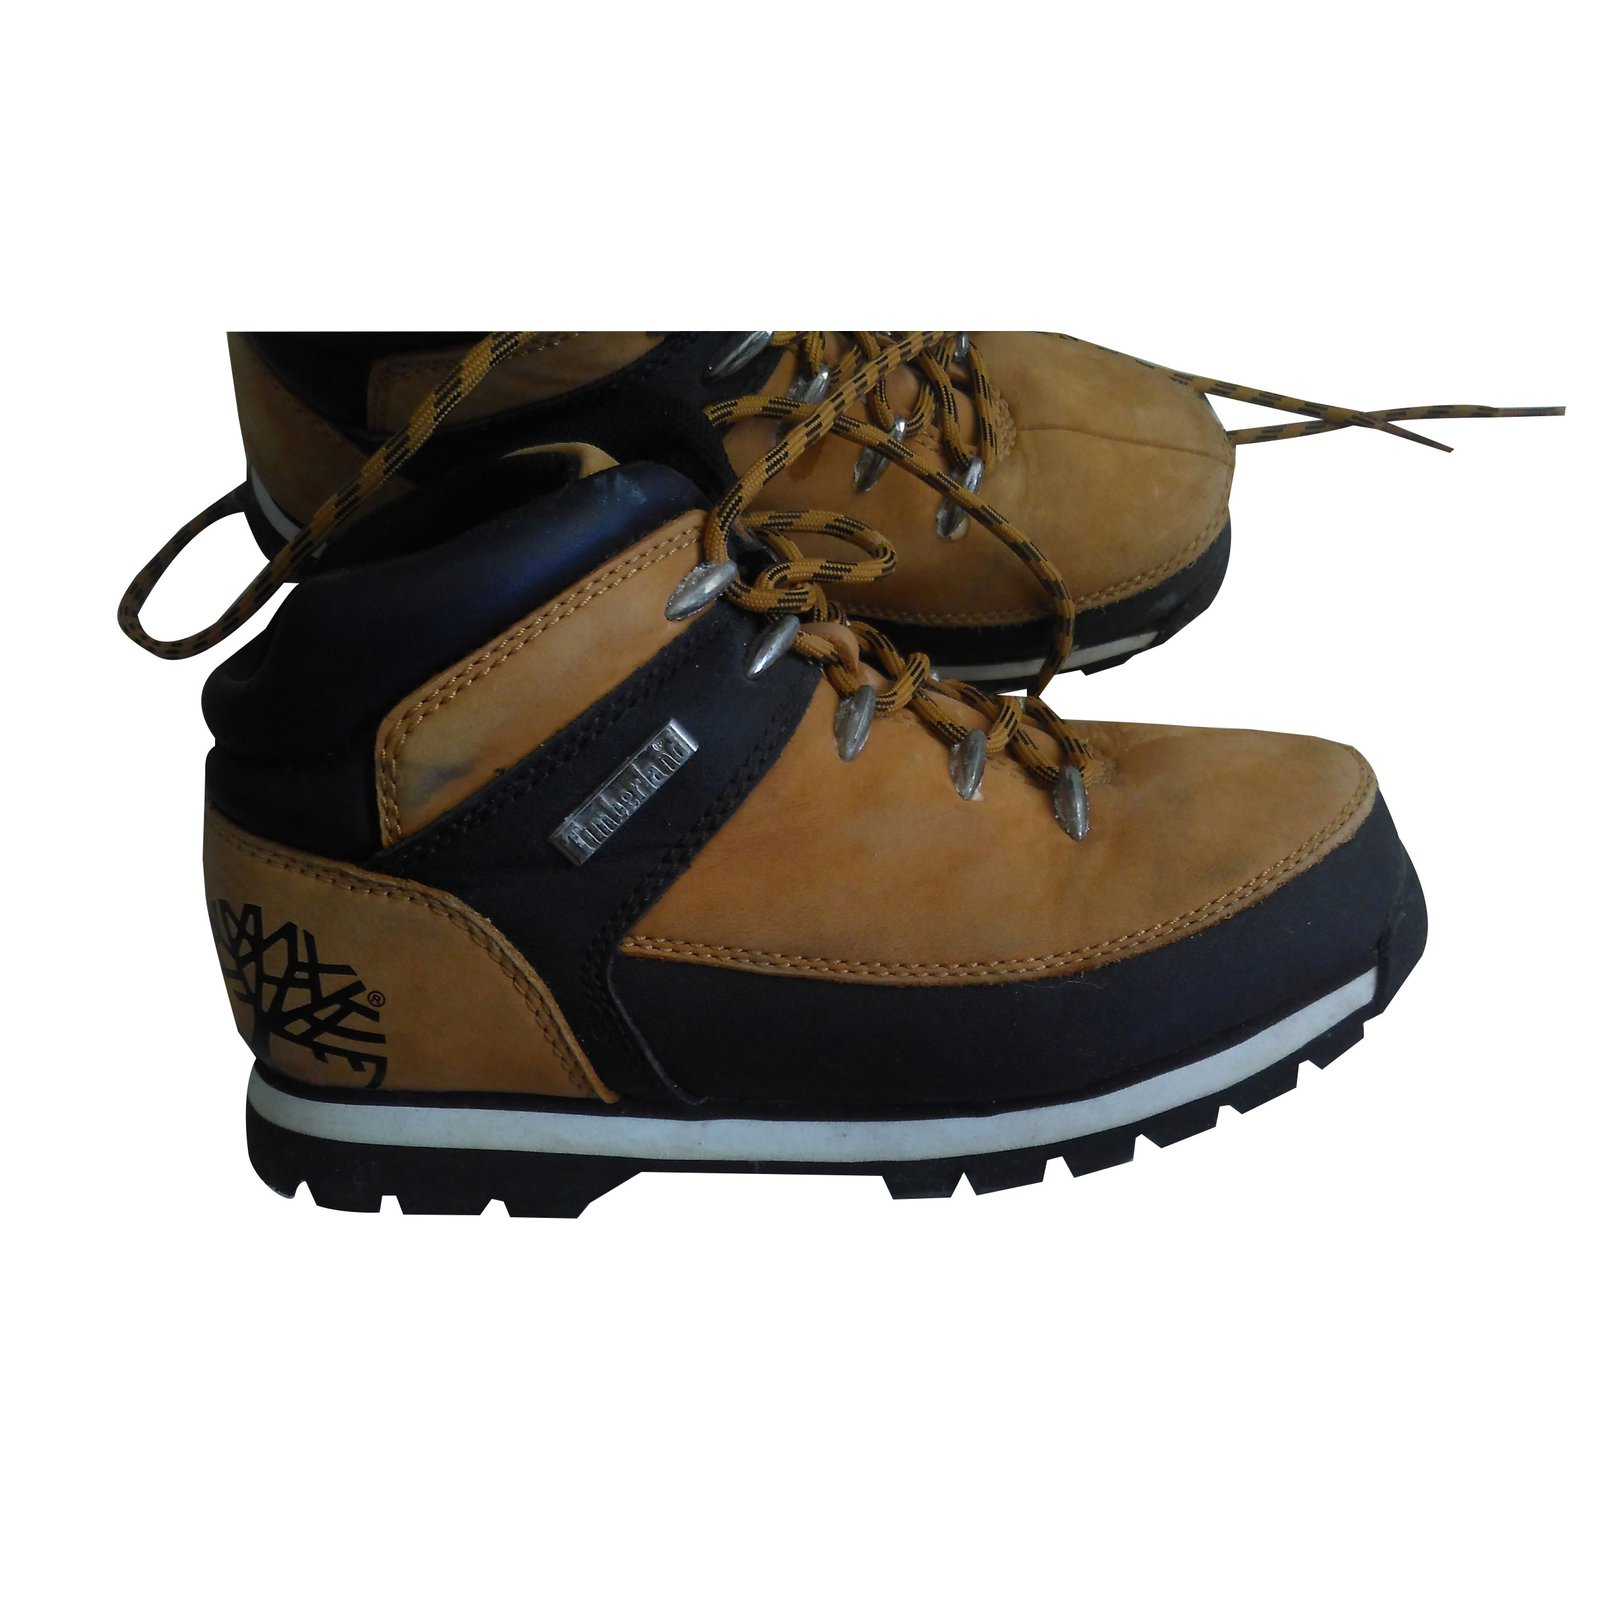 057436eab02 Chaussures à lacets Timberland Chaussures à lacets Cuir Caramel ref.35361